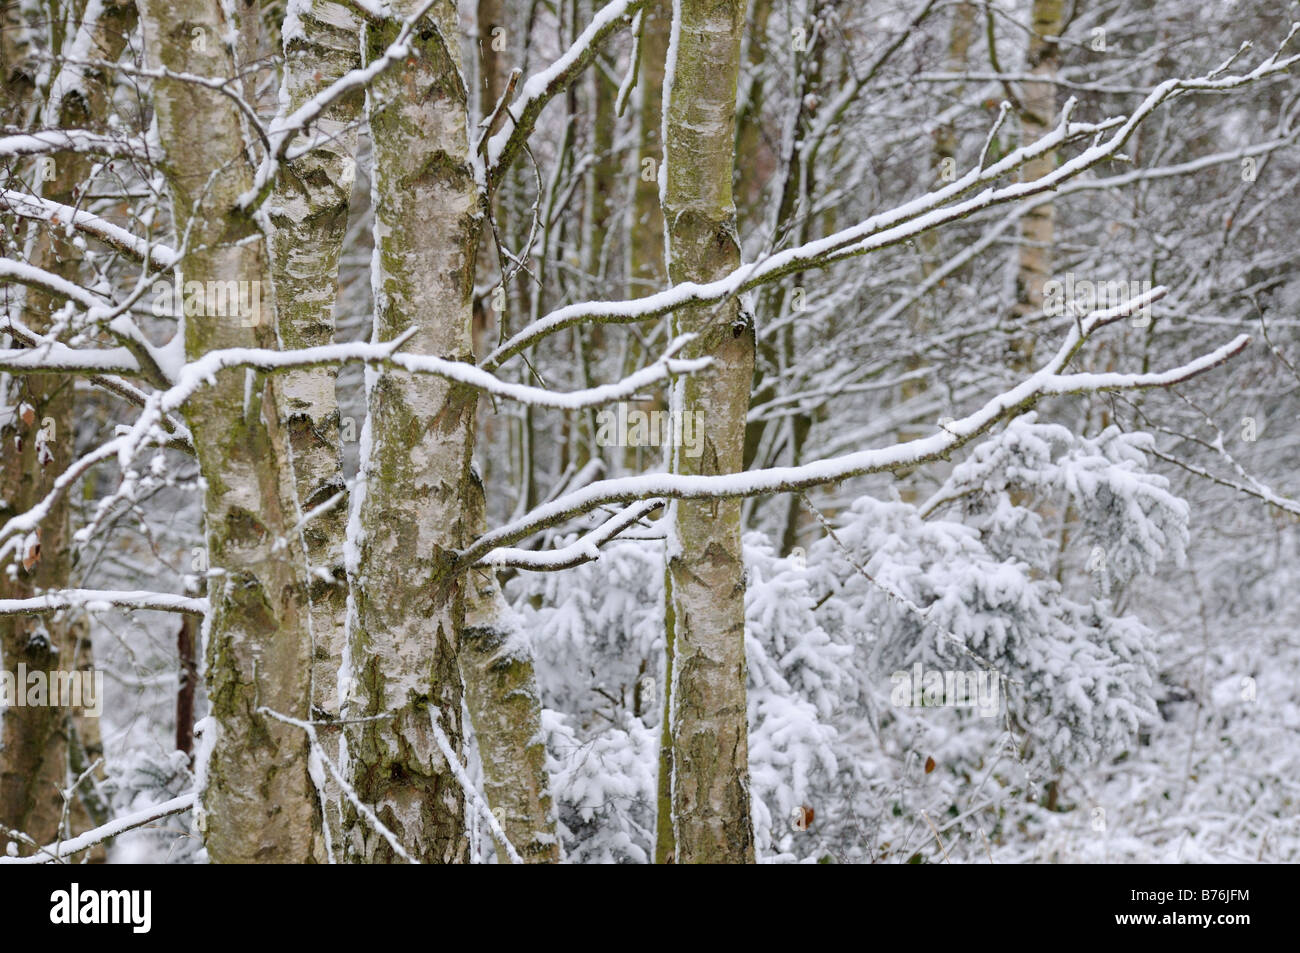 Birch trees and small conifers after snowfall Nofolk UK november - Stock Image